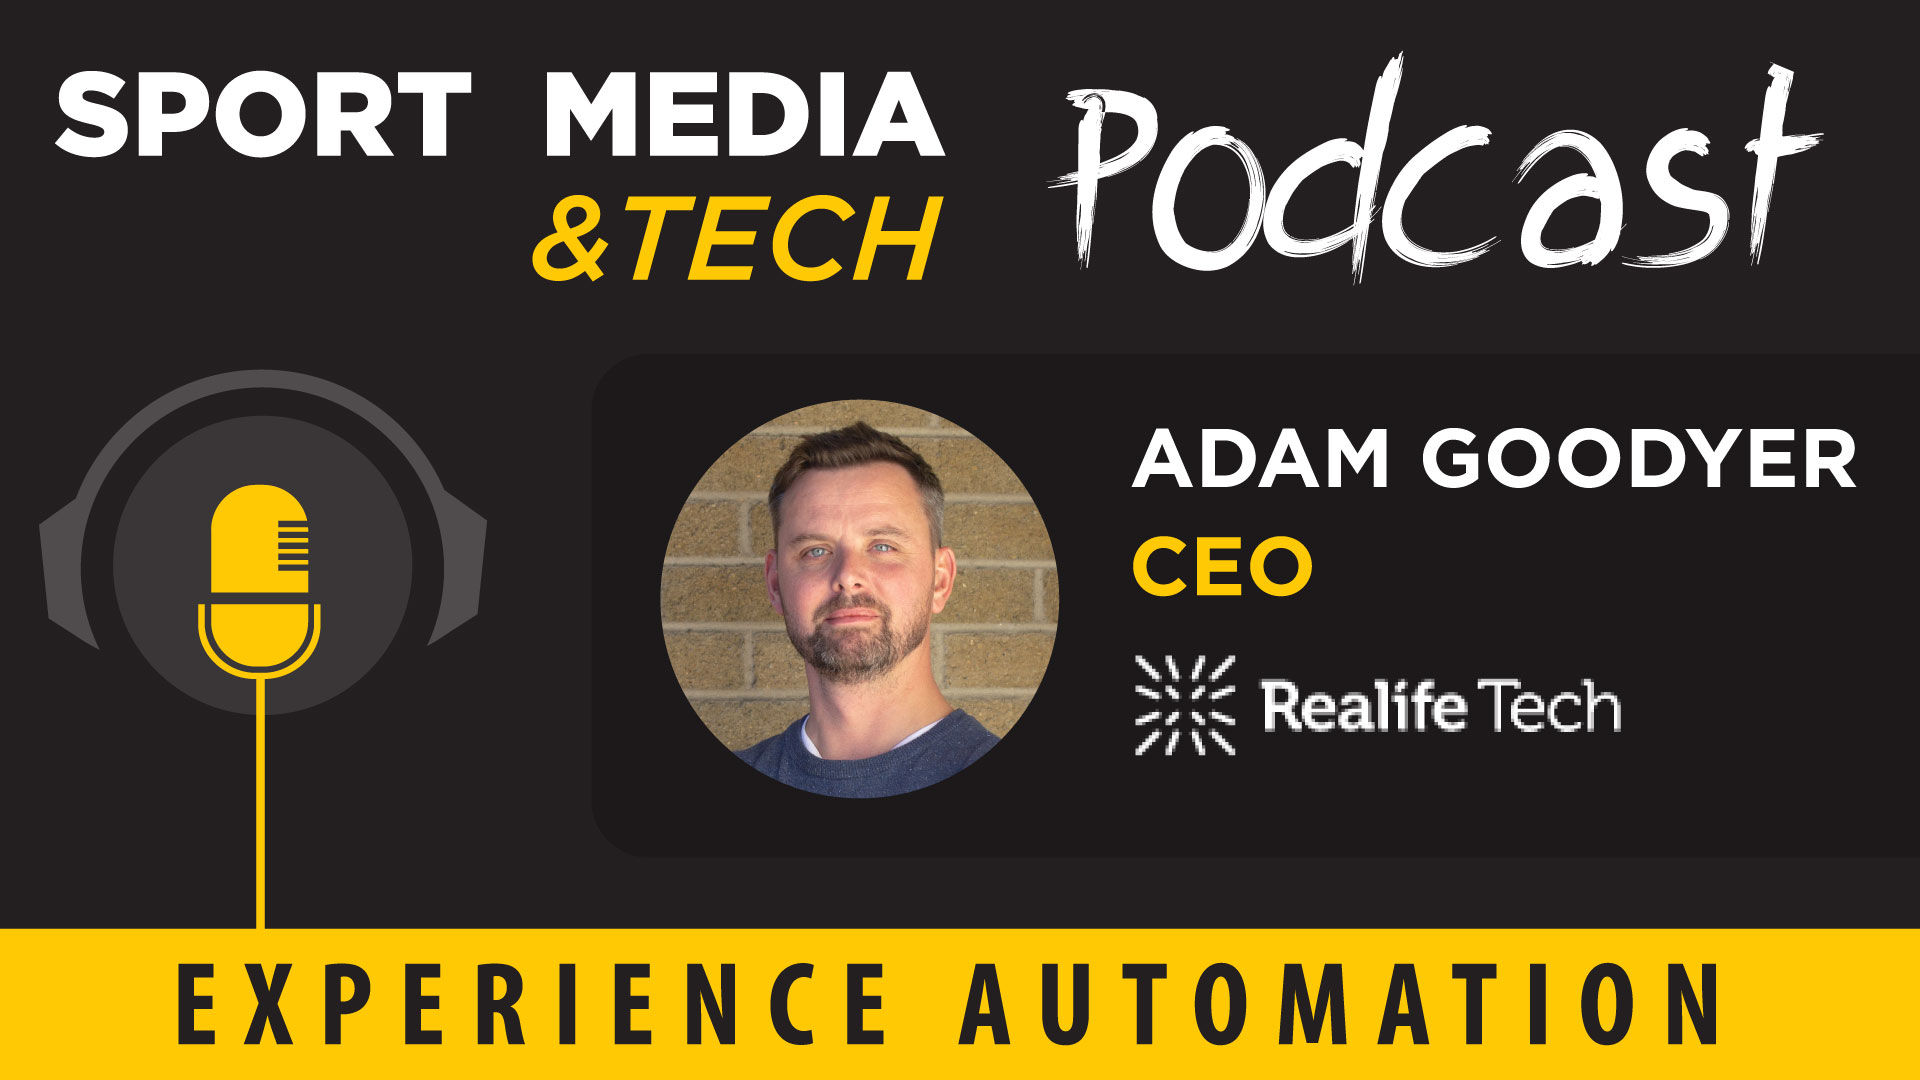 Episode 21: Experience Automation & Realife Tech